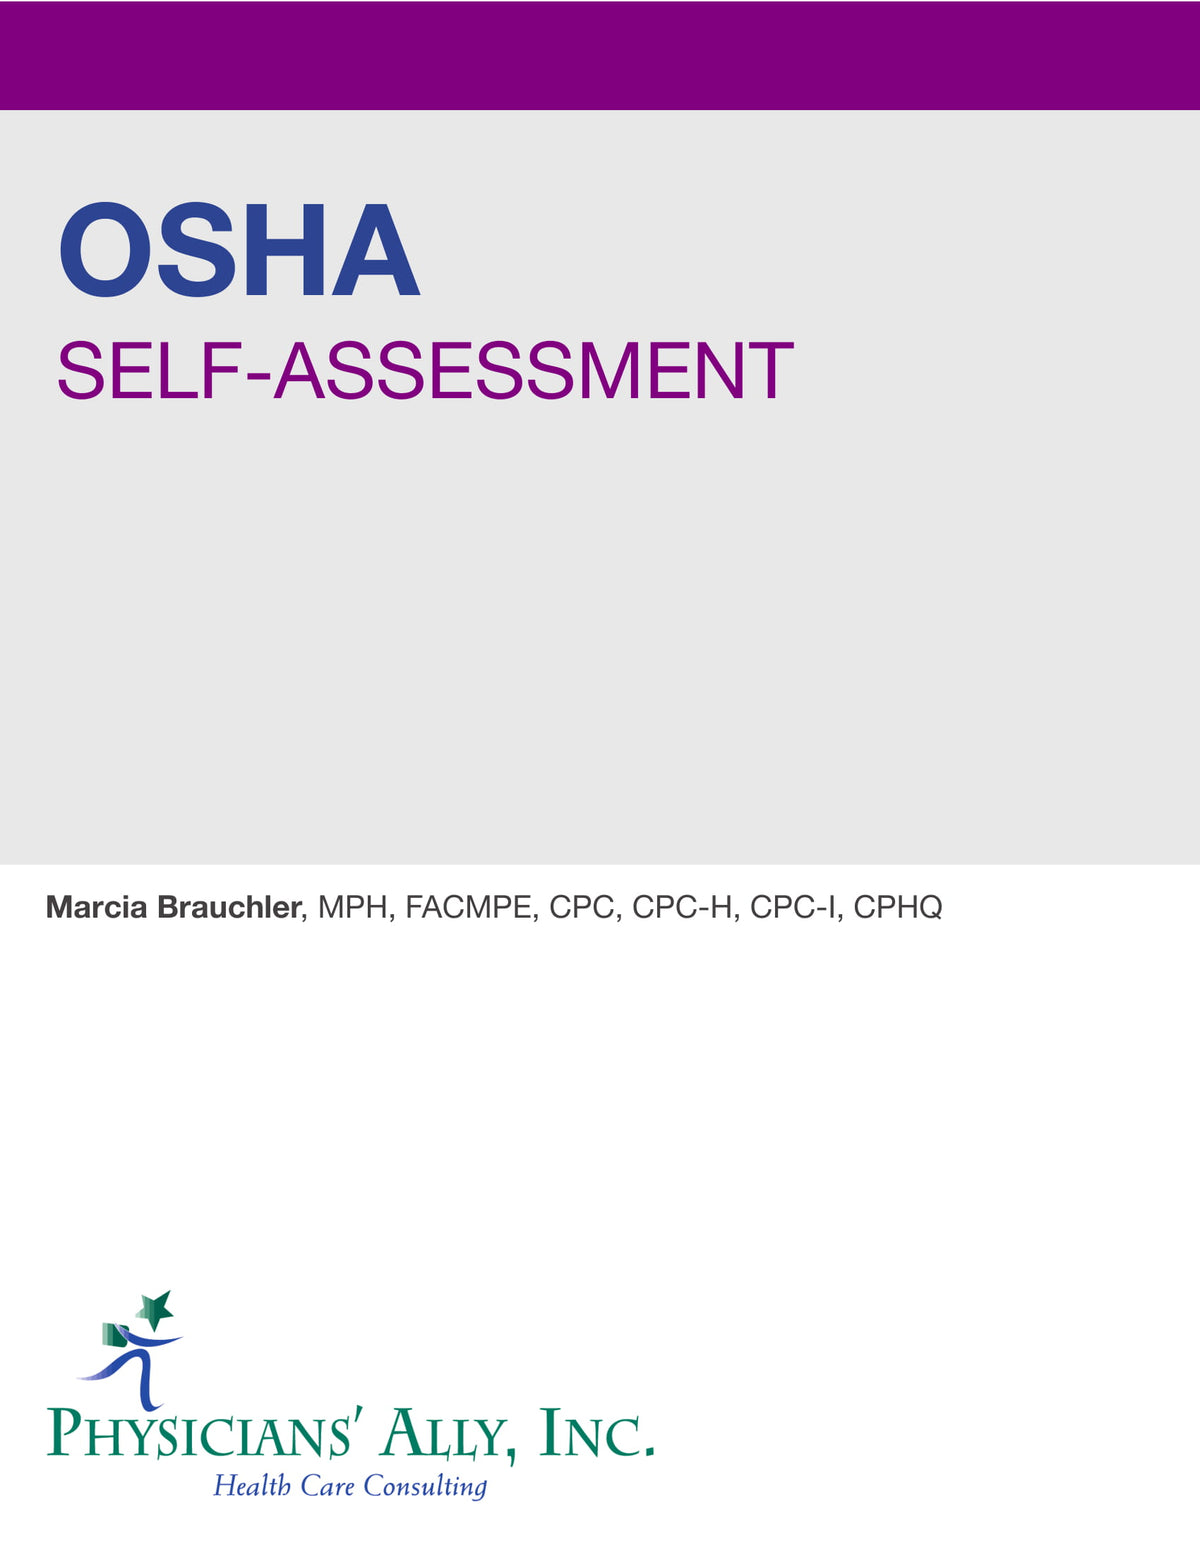 OSHA Self-Assessment